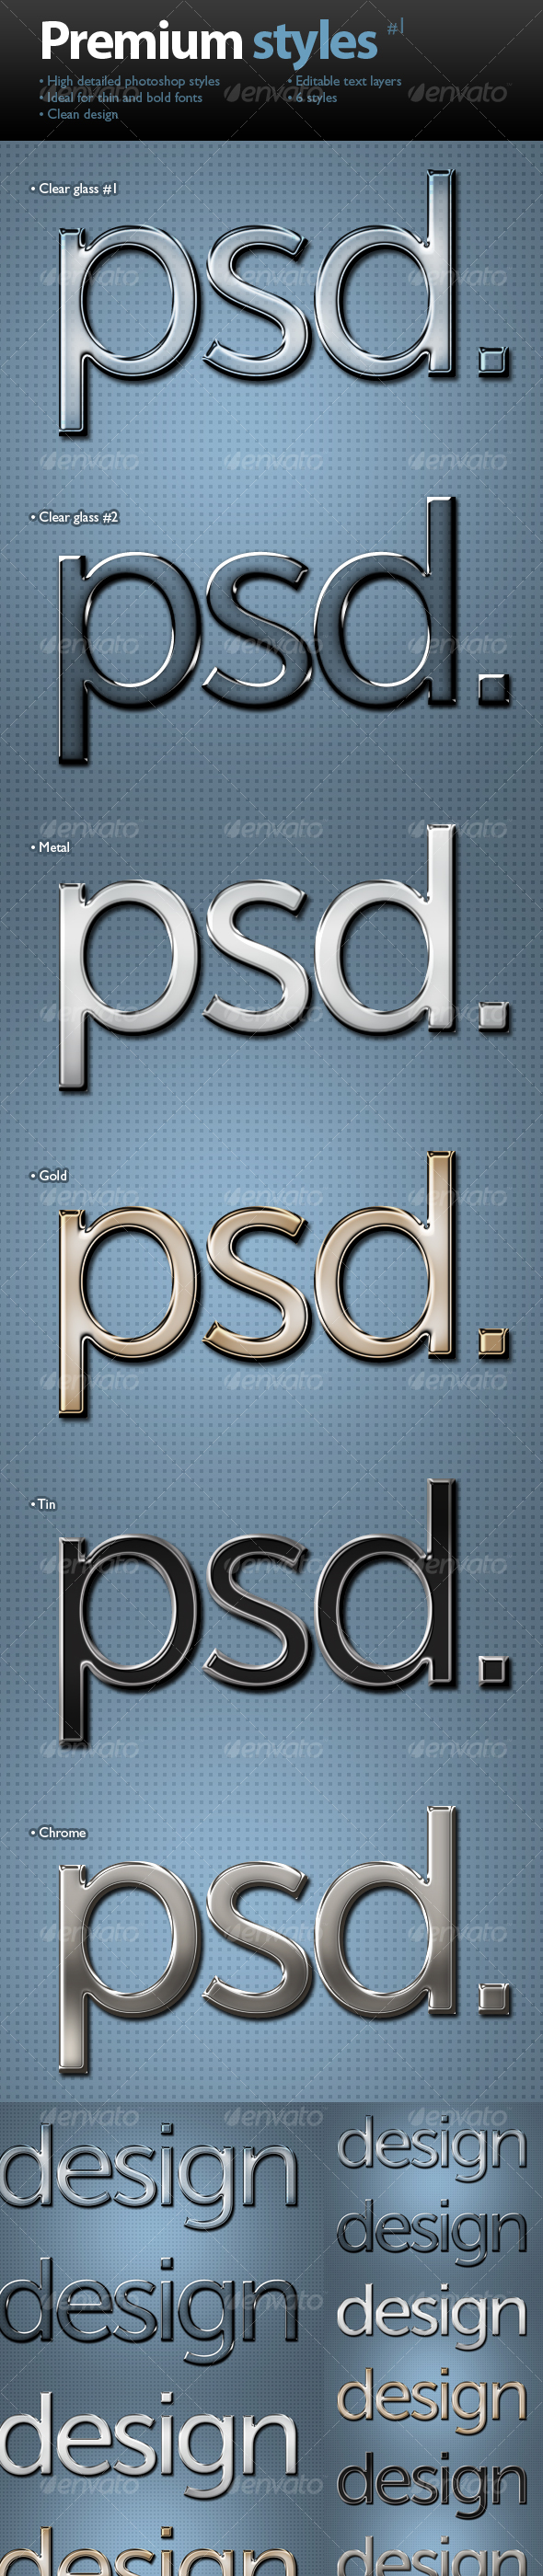 Premium text styles - GraphicRiver Item for Sale